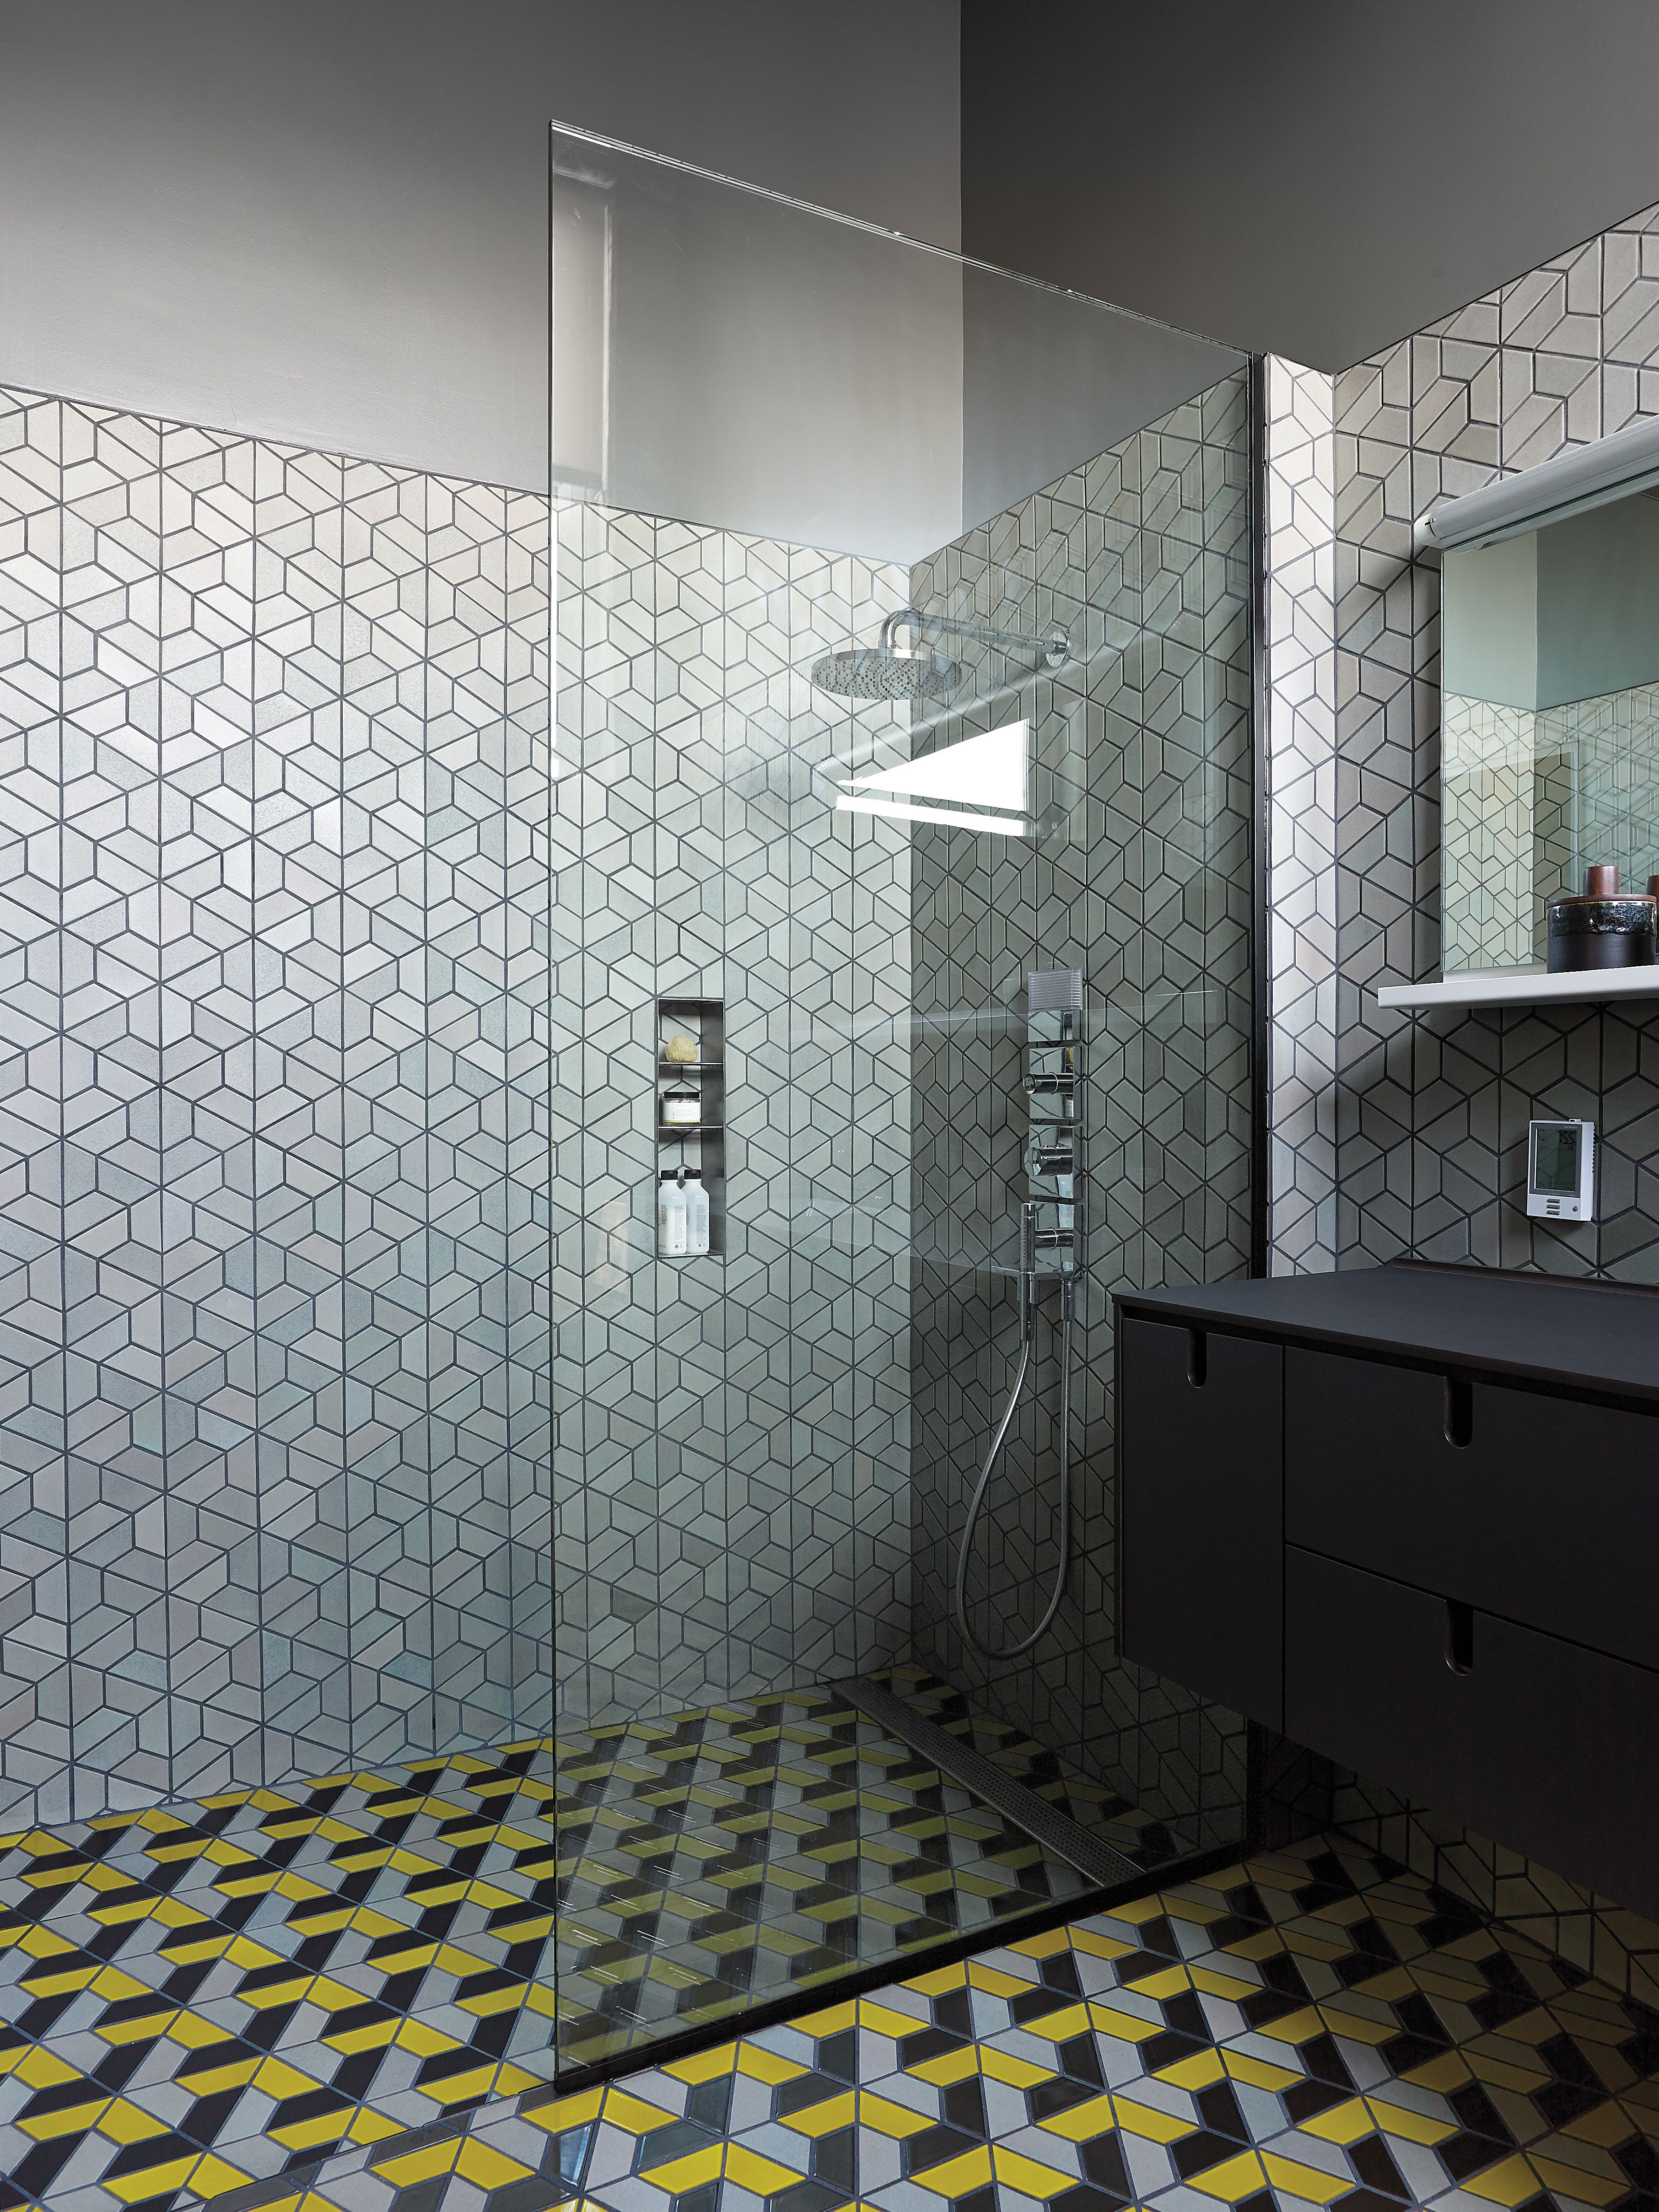 How to create the bathroom tile design of your dreams heath how to create the bathroom tile design of your dreams dailygadgetfo Image collections